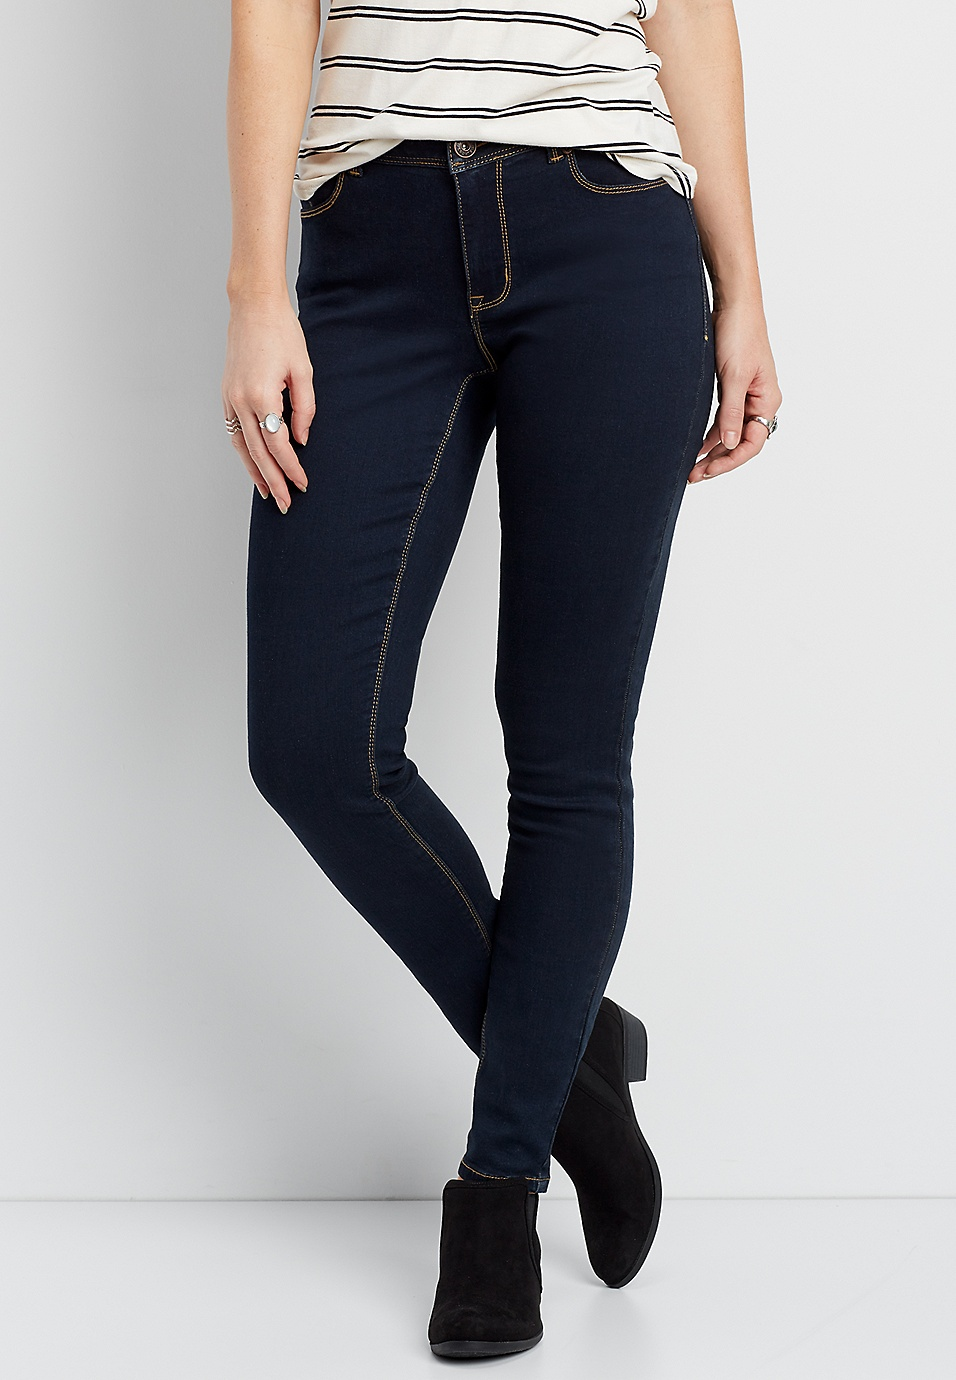 Buy Cheap Visit Denimflex Curvy Skinny Jeans In Black Maurices Genuine For Sale Free Shipping Largest Supplier 0PfL5eInPT